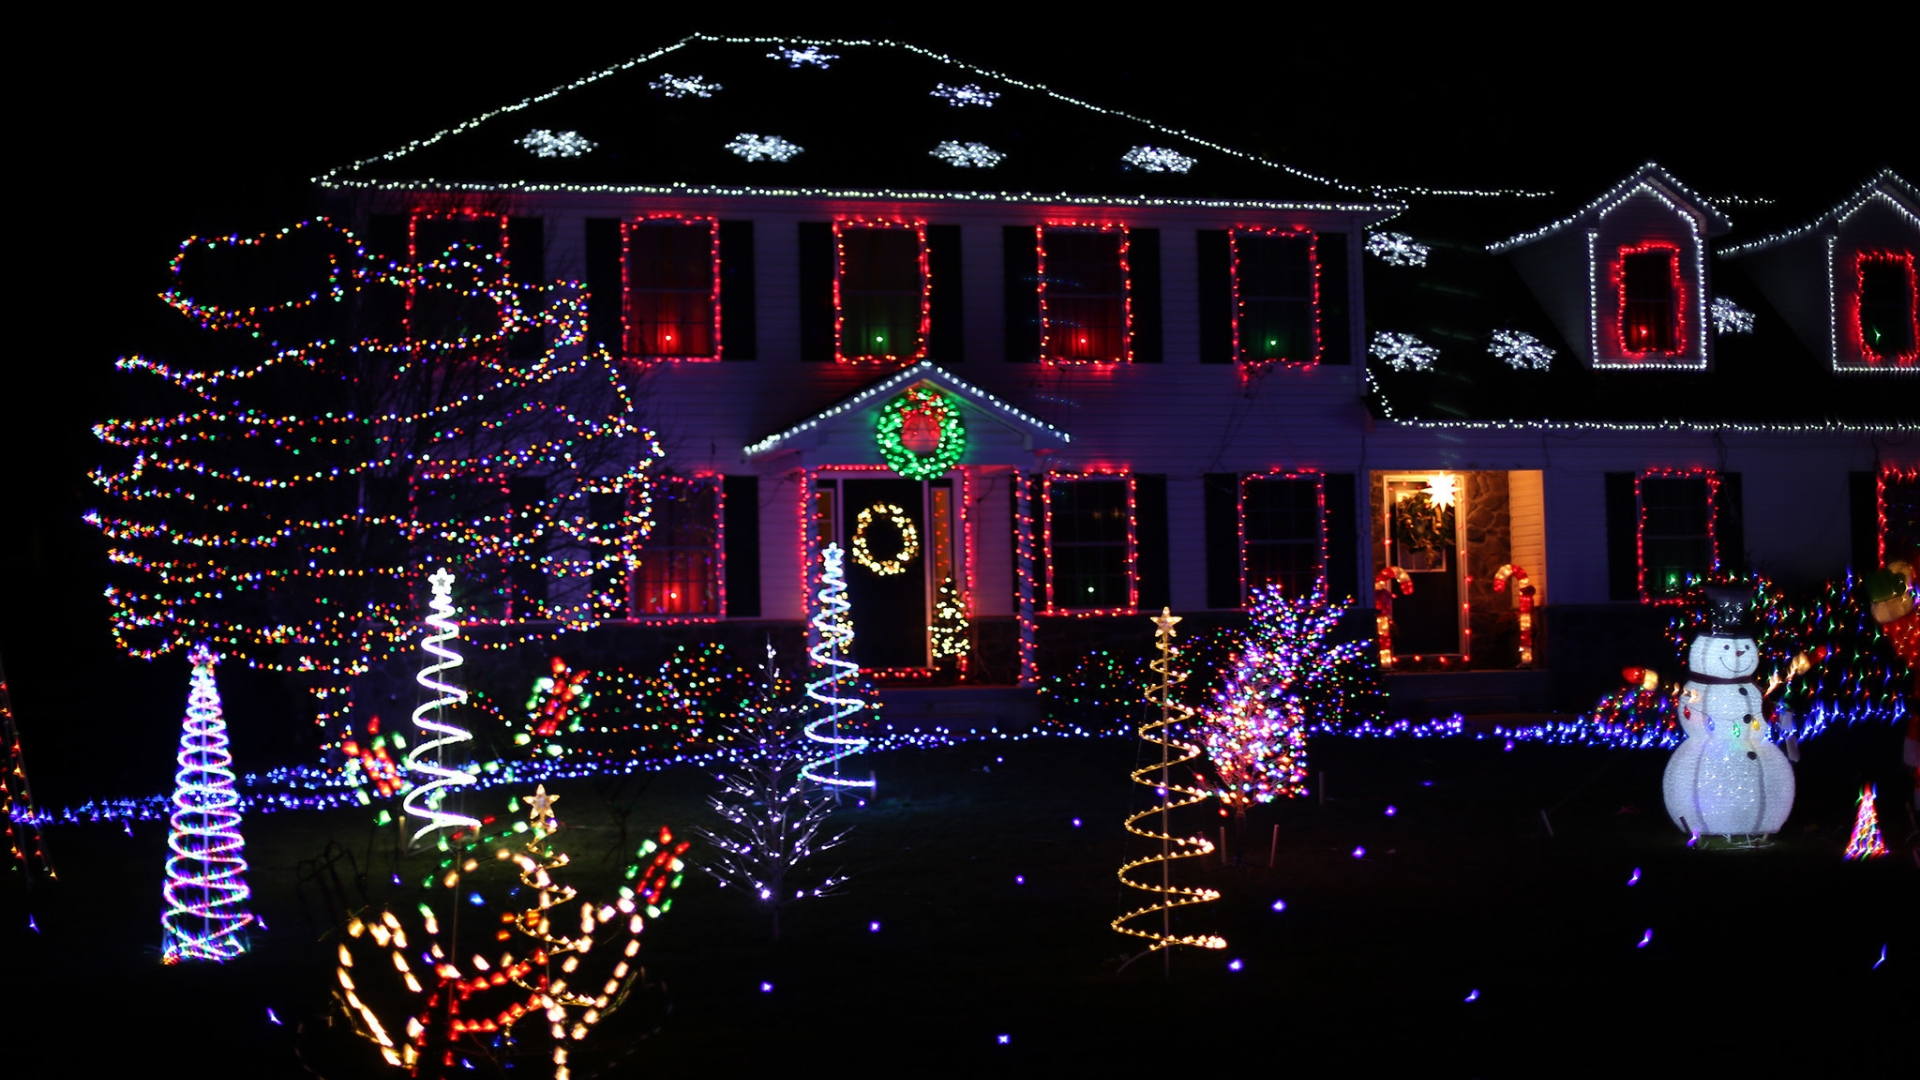 Christmas Tree Lights Houses Neighborhoods Las Vegas 2020 The 12 Houses of Christmas: A new Lehigh Valley holiday lights